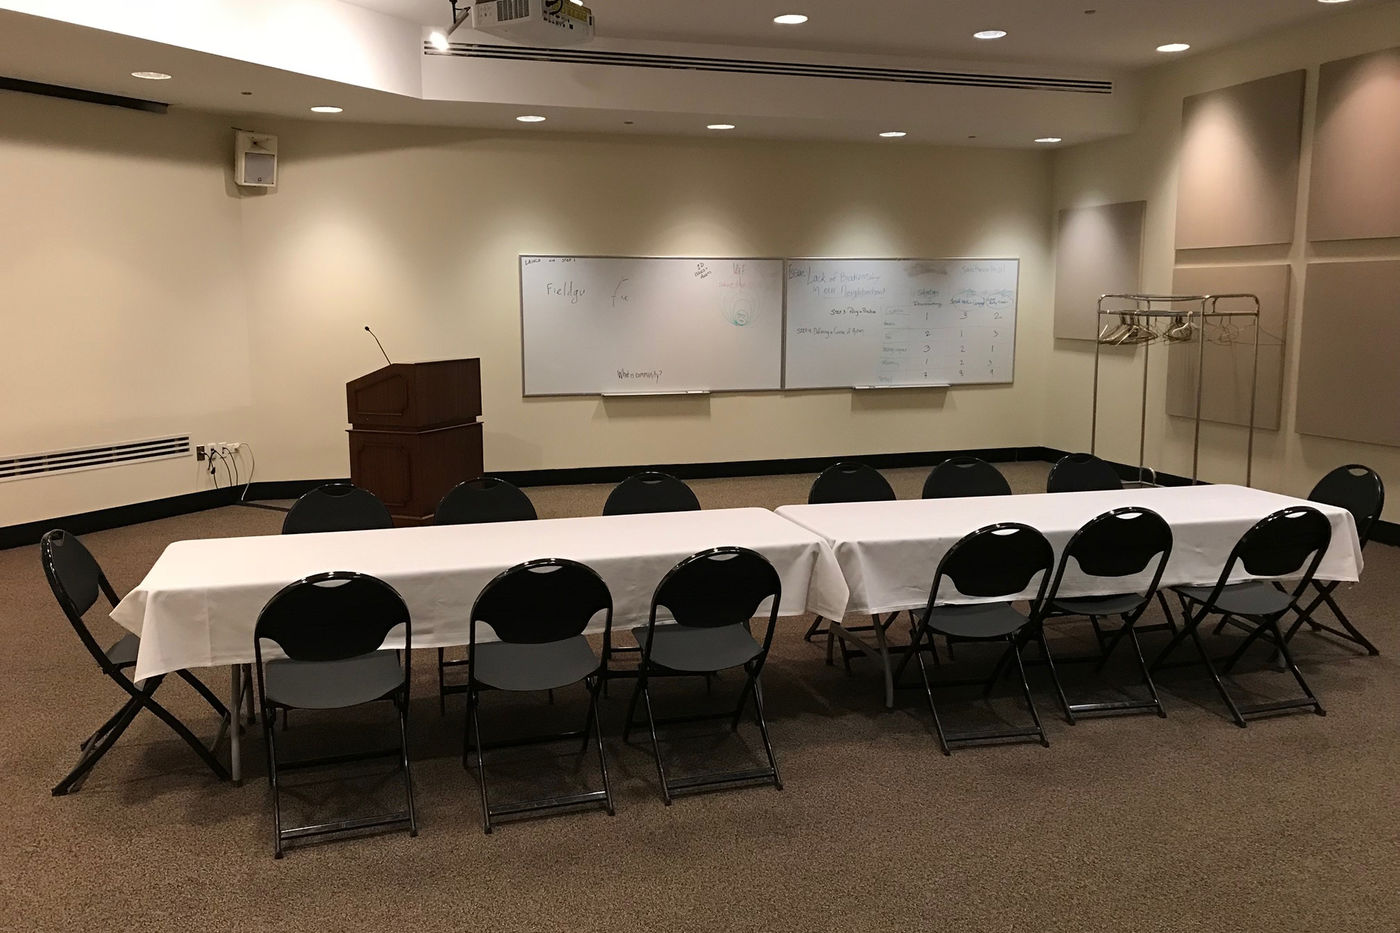 A long tables sits in the middle of Lecture Hall II. The table is set for 14 guests and topped with a white tablecloth. A podium, two whiteboards, and empty coat rack are visible in the back. A projector hangs overhead.